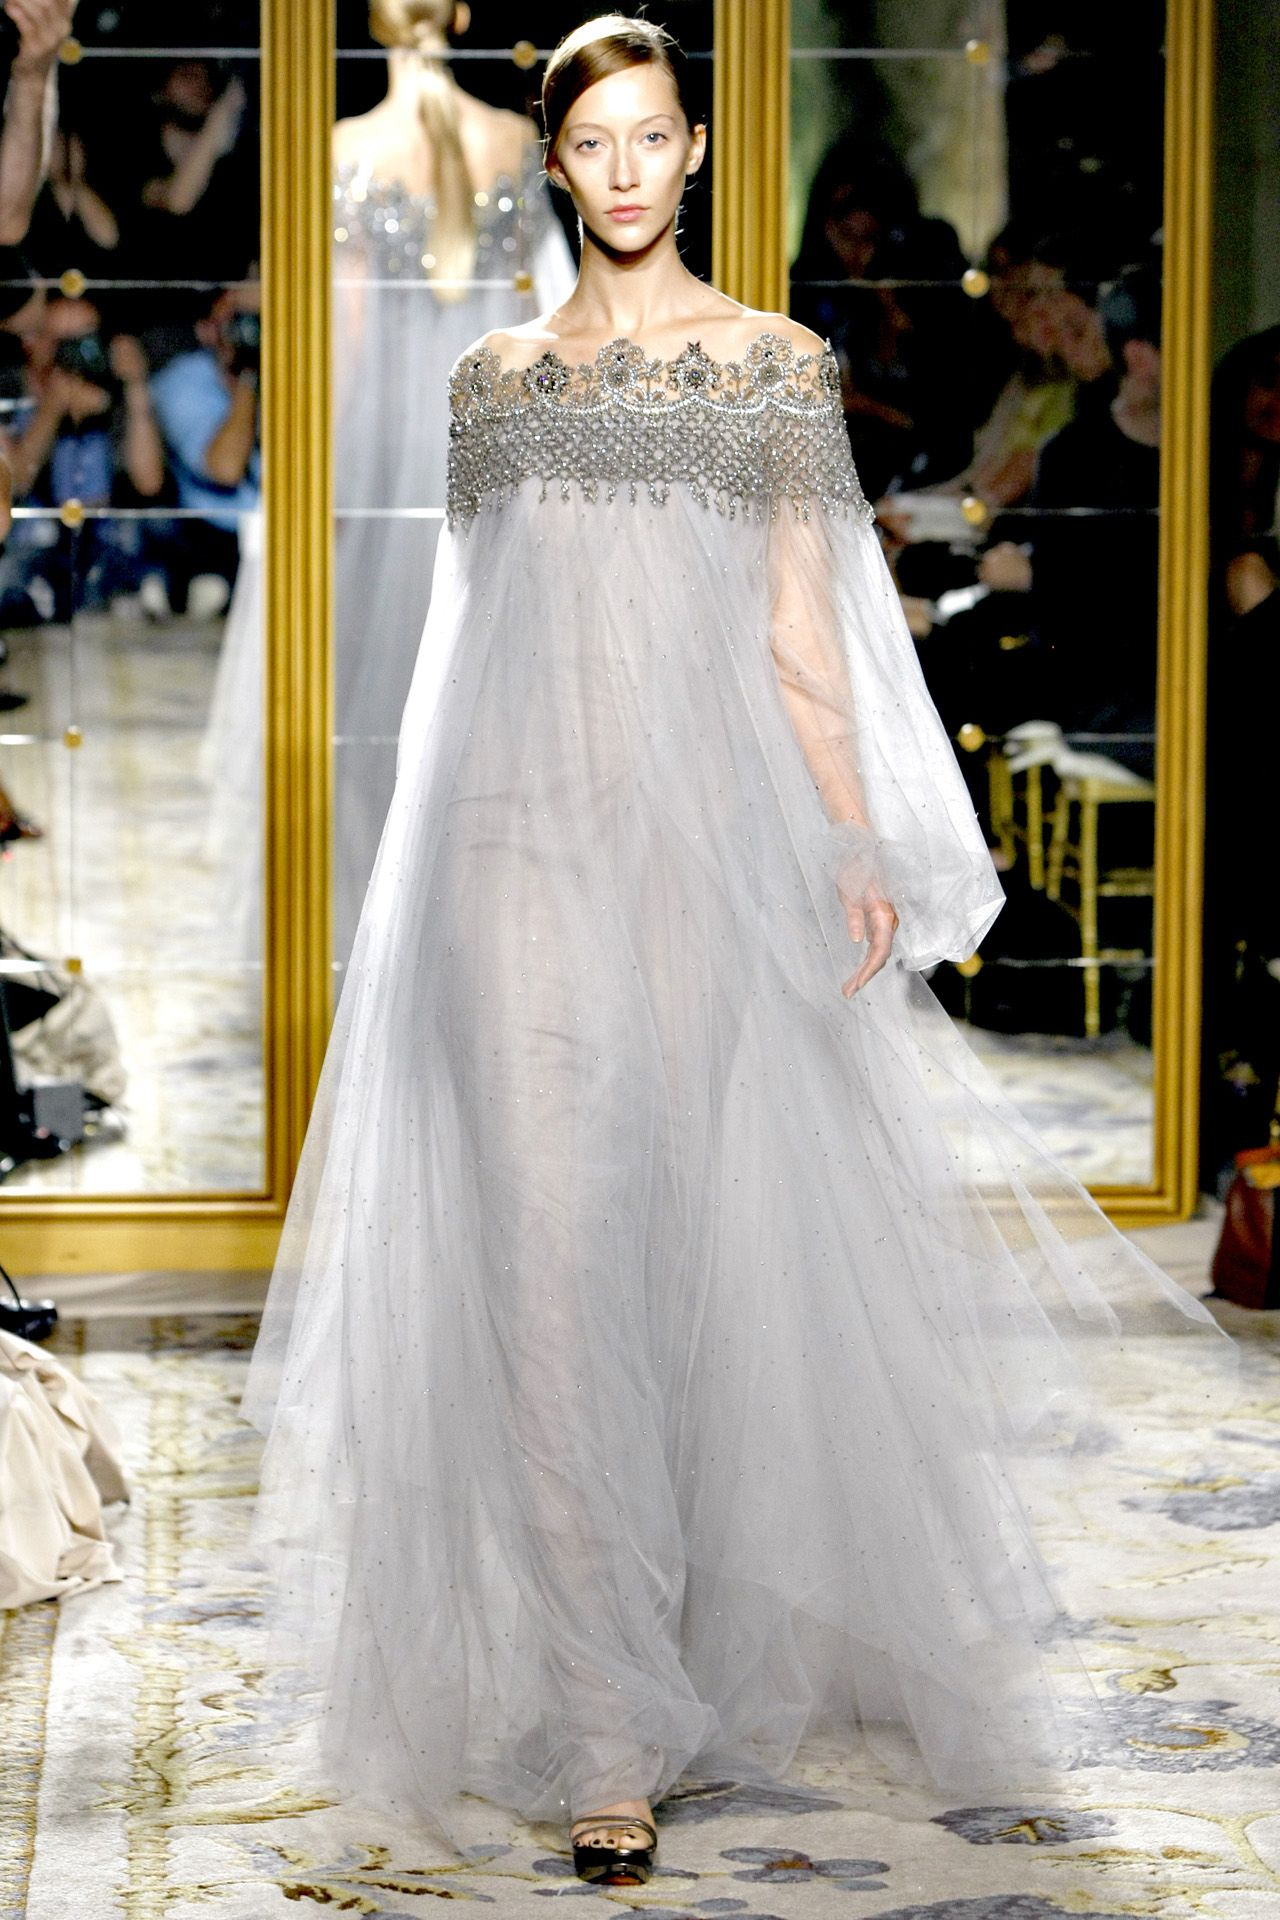 Details on Blake Lively's Marchesa Wedding Gown (Which Was Clearly NotChanel) Details on Blake Lively's Marchesa Wedding Gown (Which Was Clearly NotChanel) new images